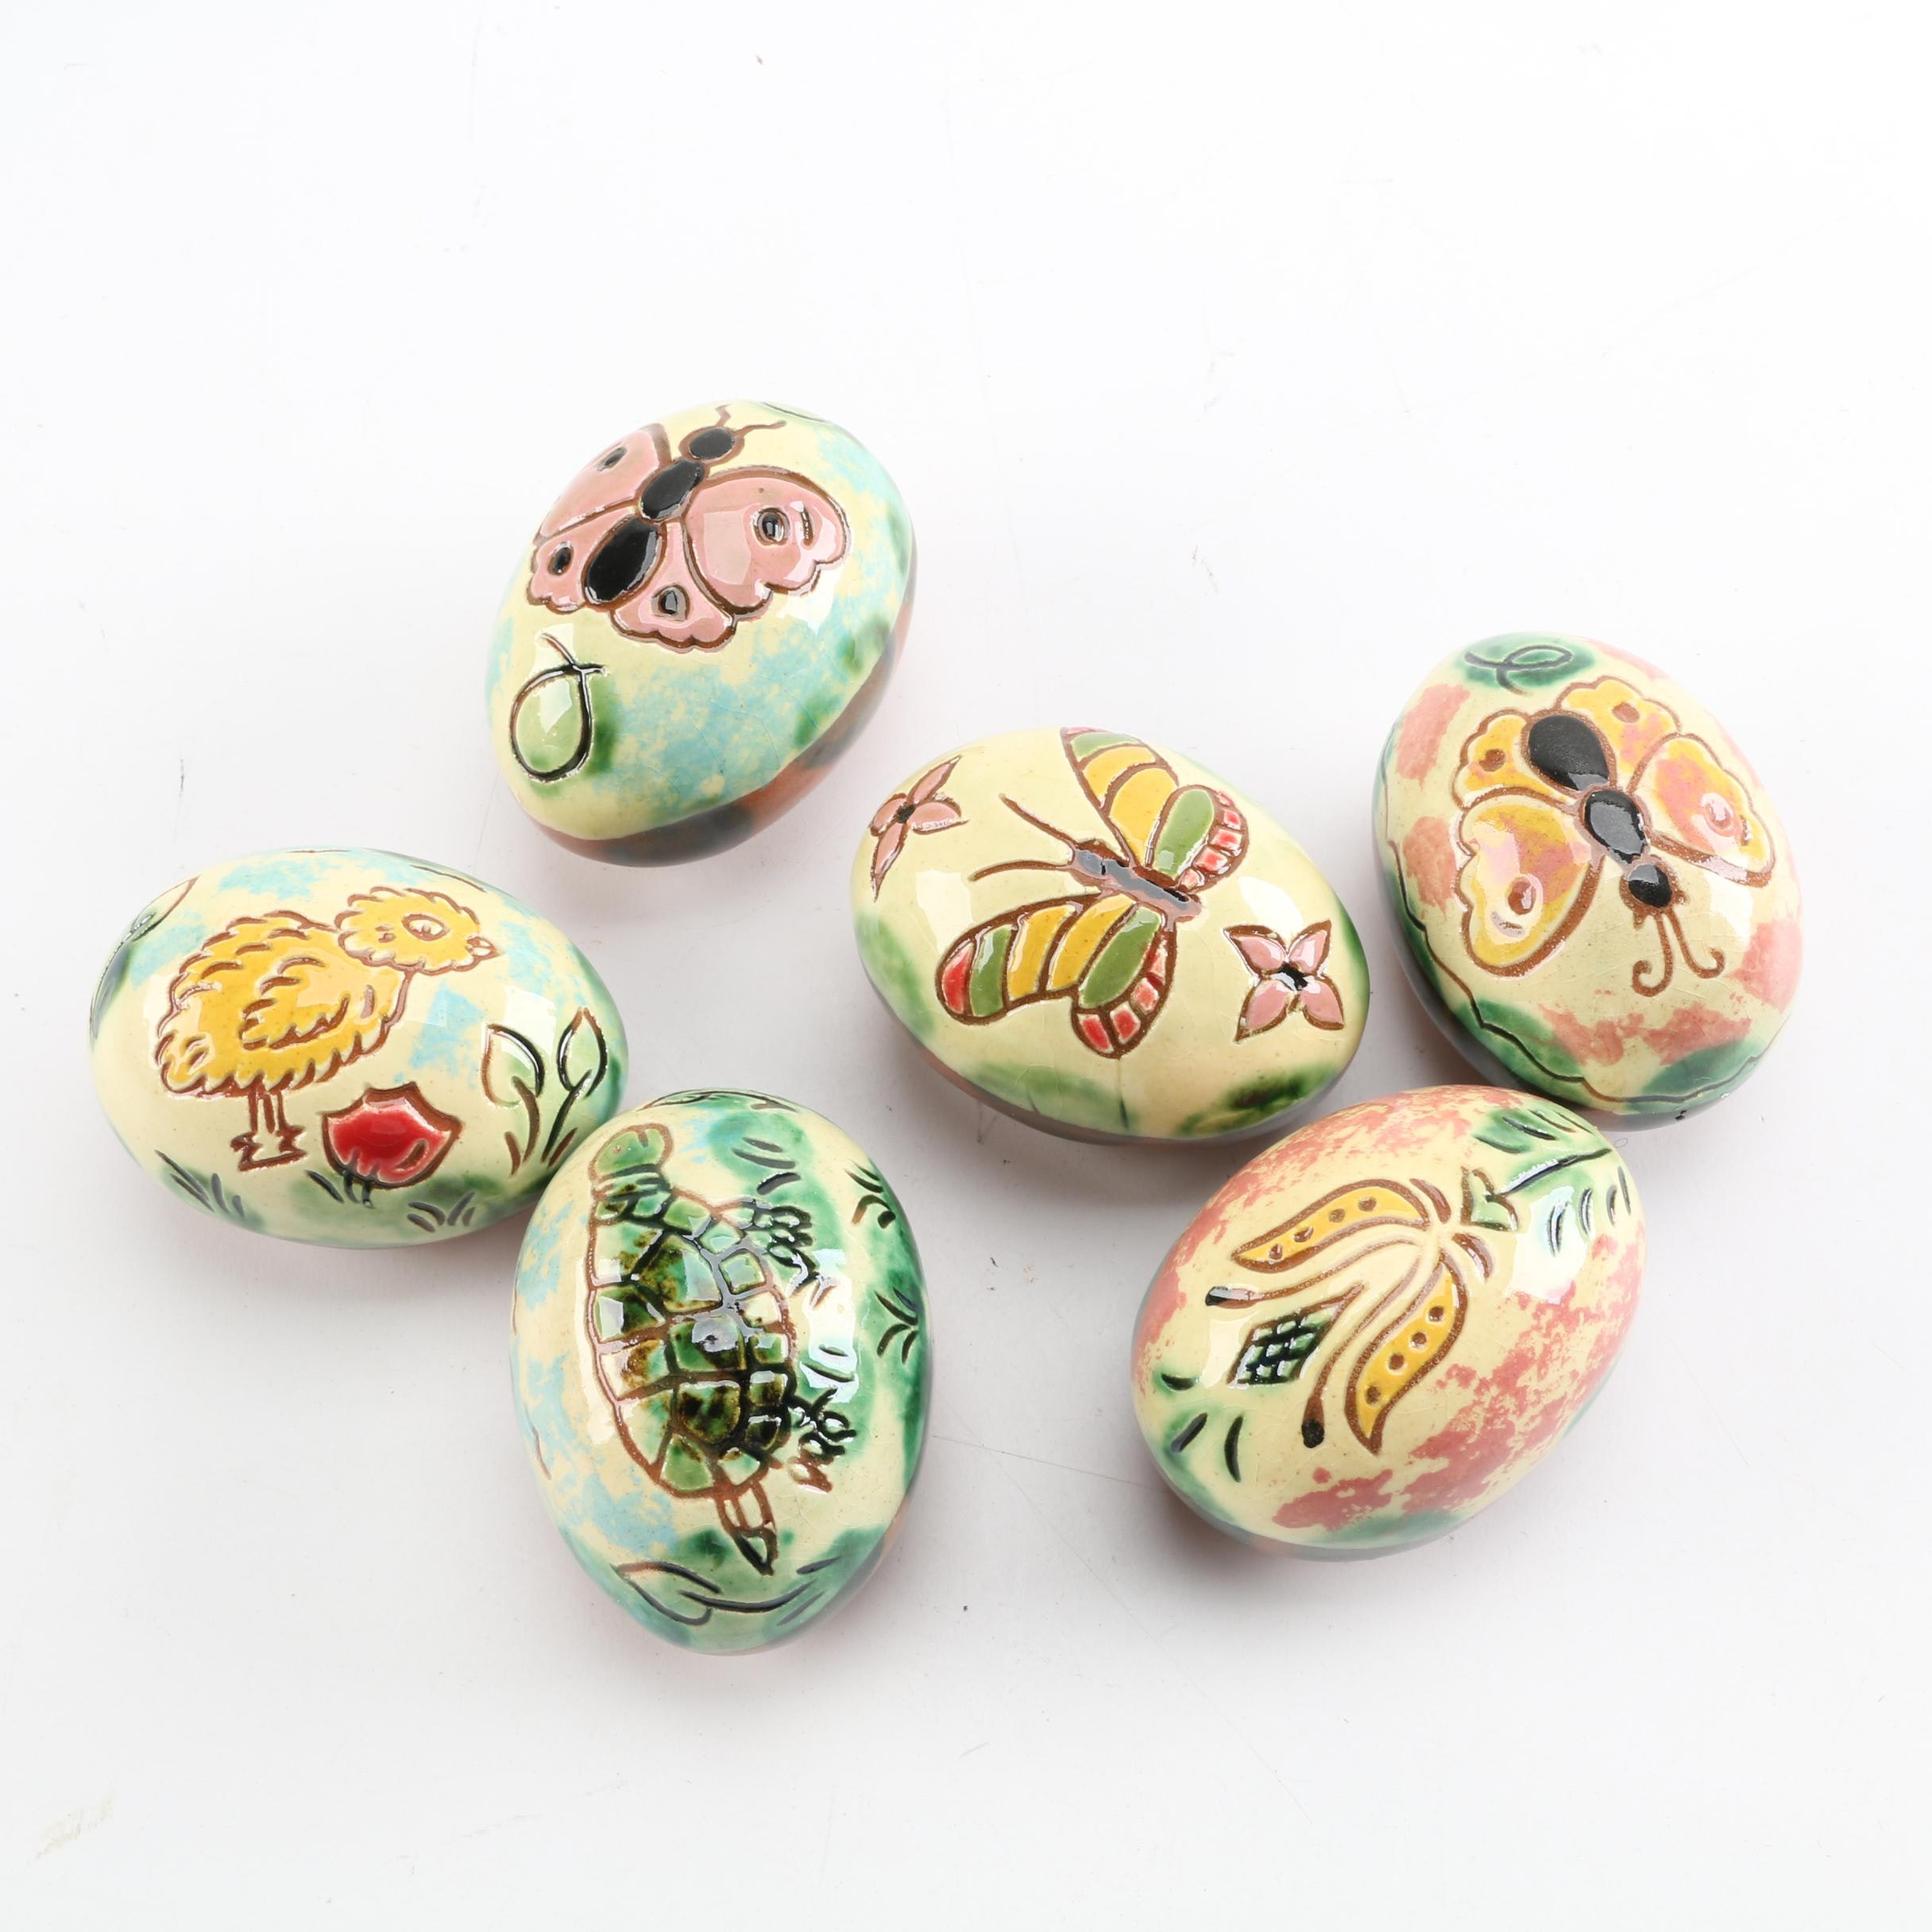 Hand-Painted Lester Breininger Sgraffito Redware Eggs